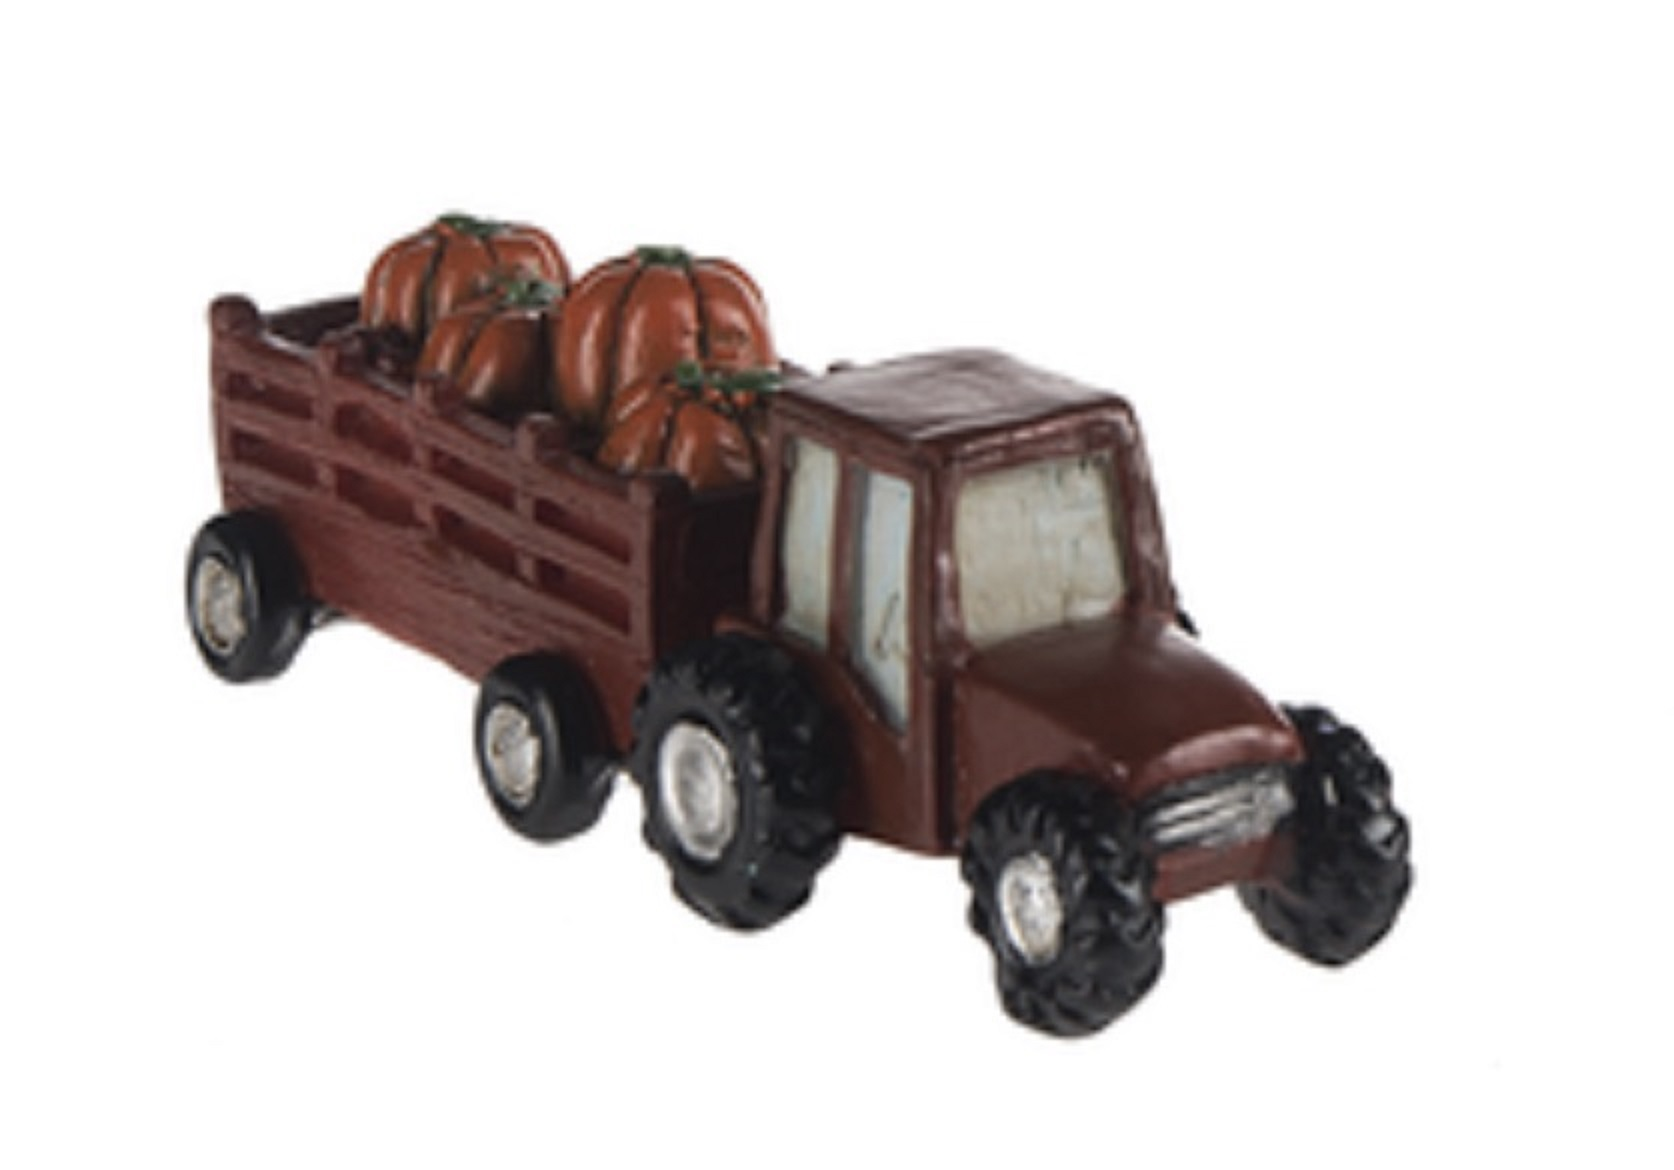 Brown Tractor Trailer Filled With Pumpkins Figure By Ganz by